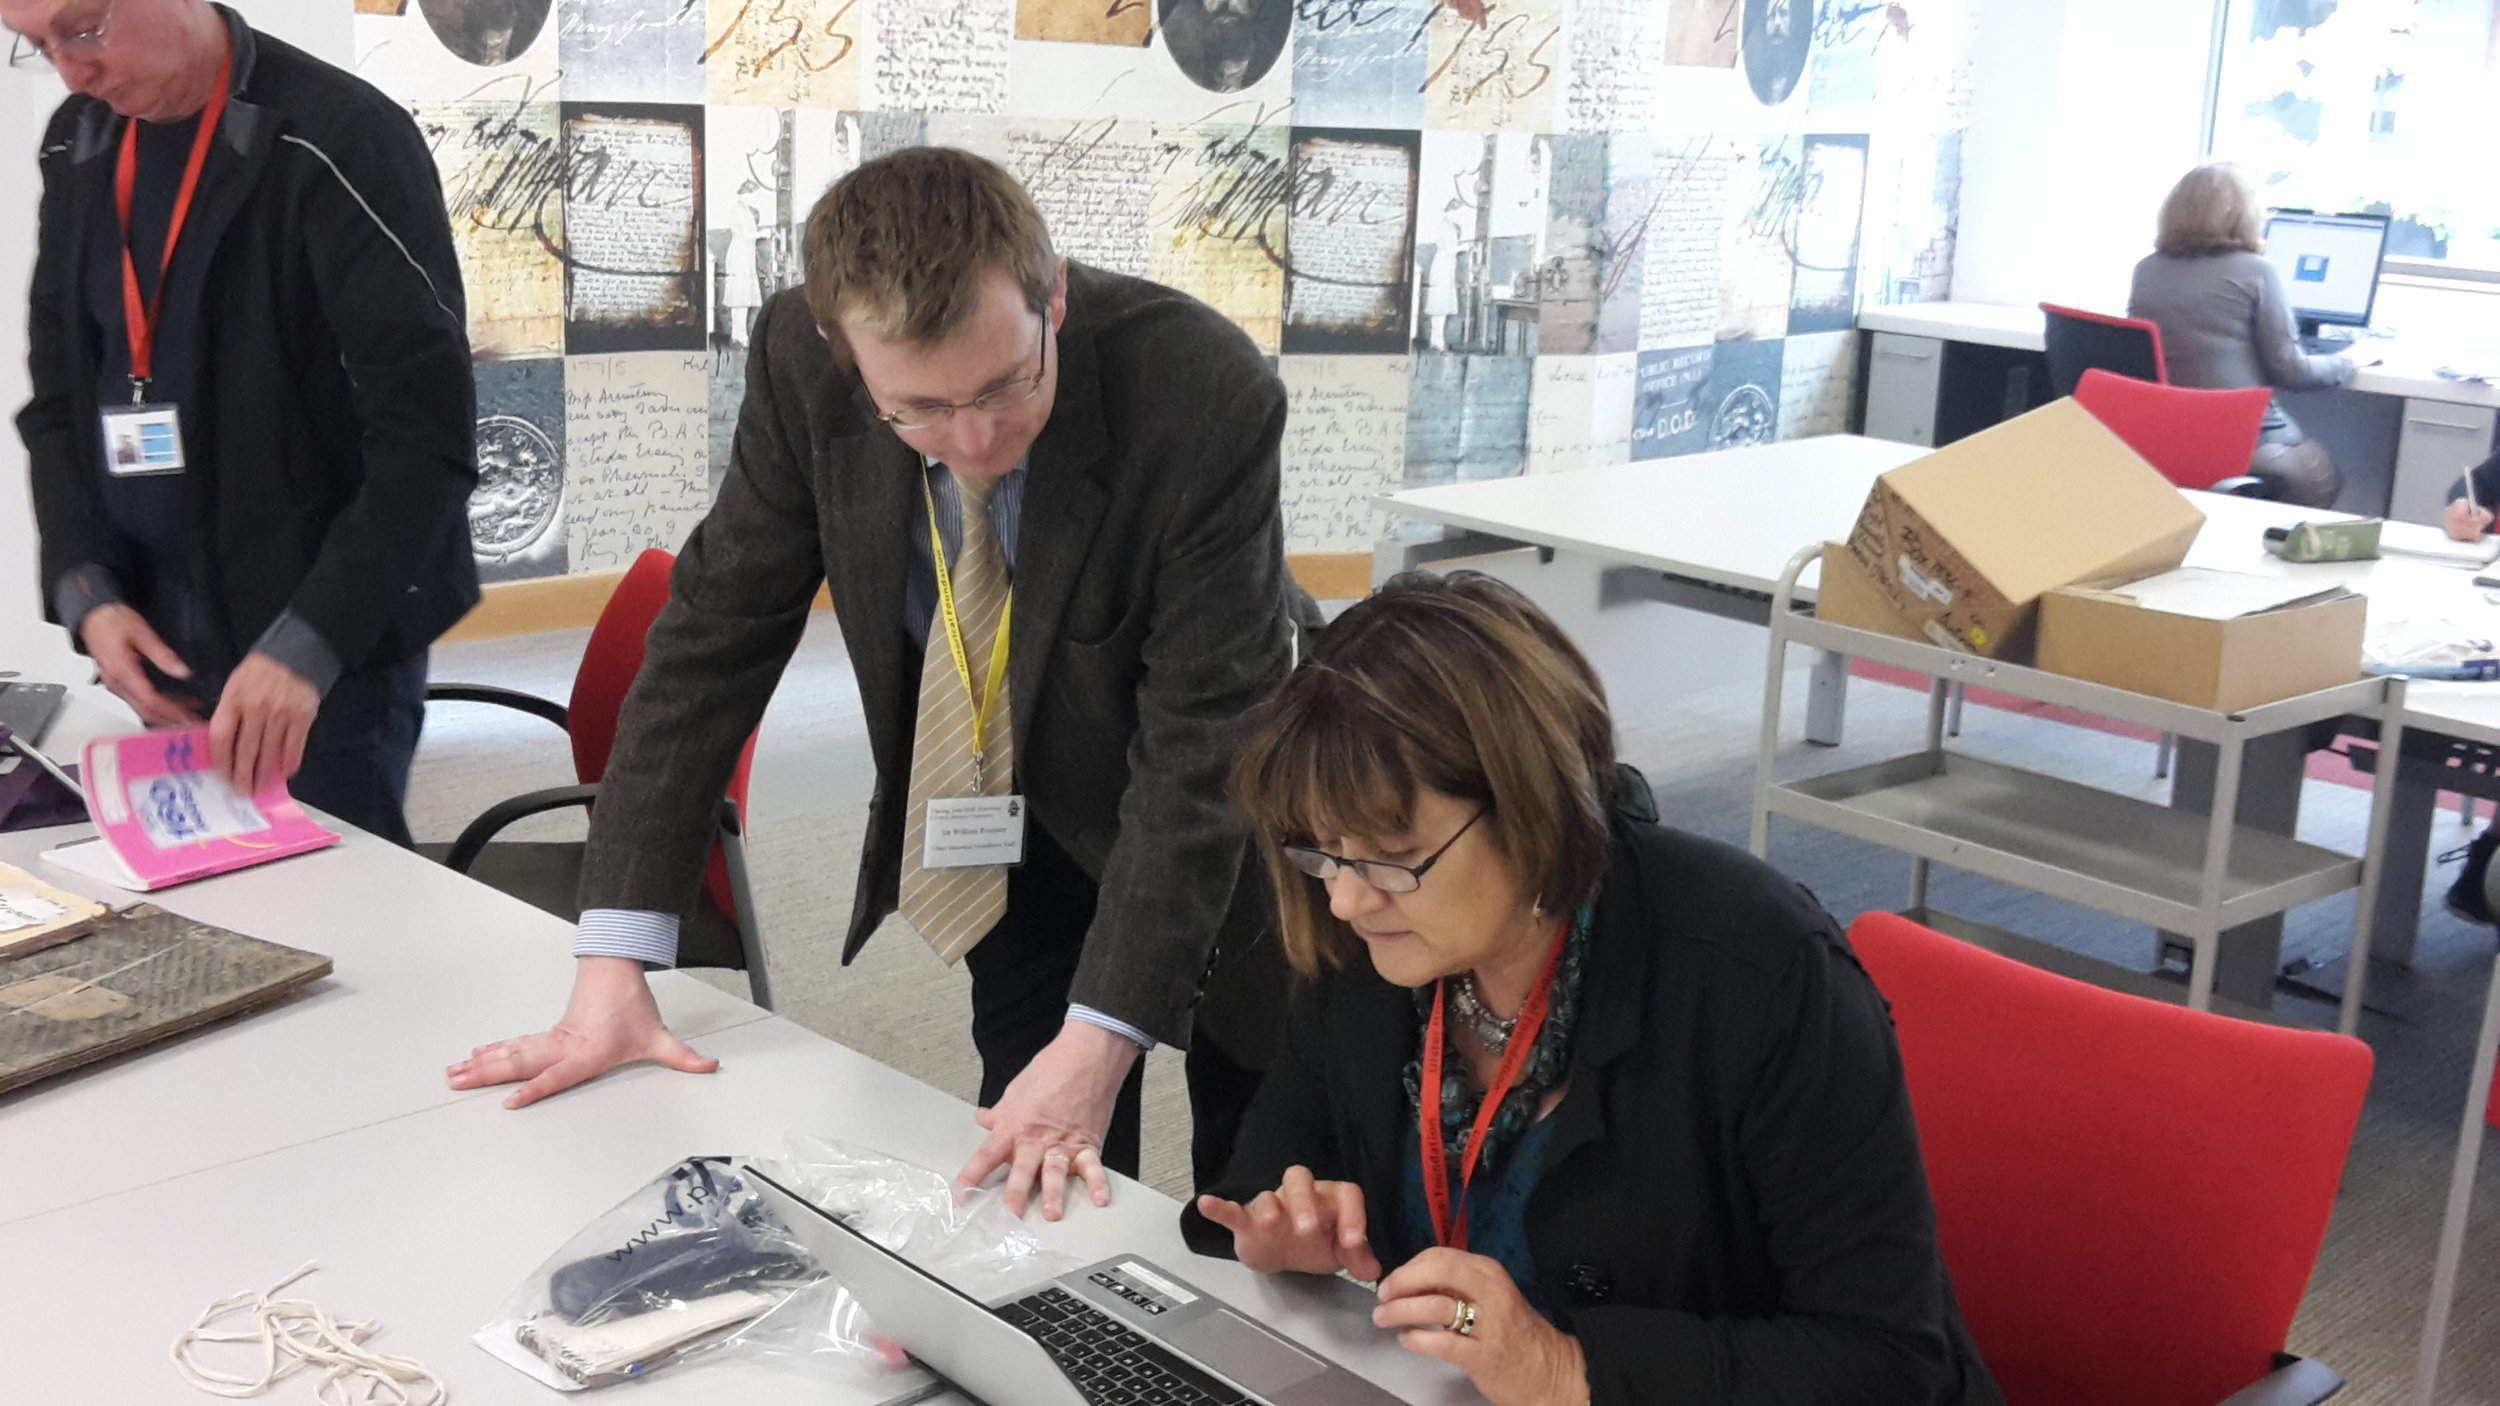 The Foundation's Research Director Dr William Roulston assisting one of the delegates of our family history conference at the Public Record Office of Northern Ireland, September 2015.